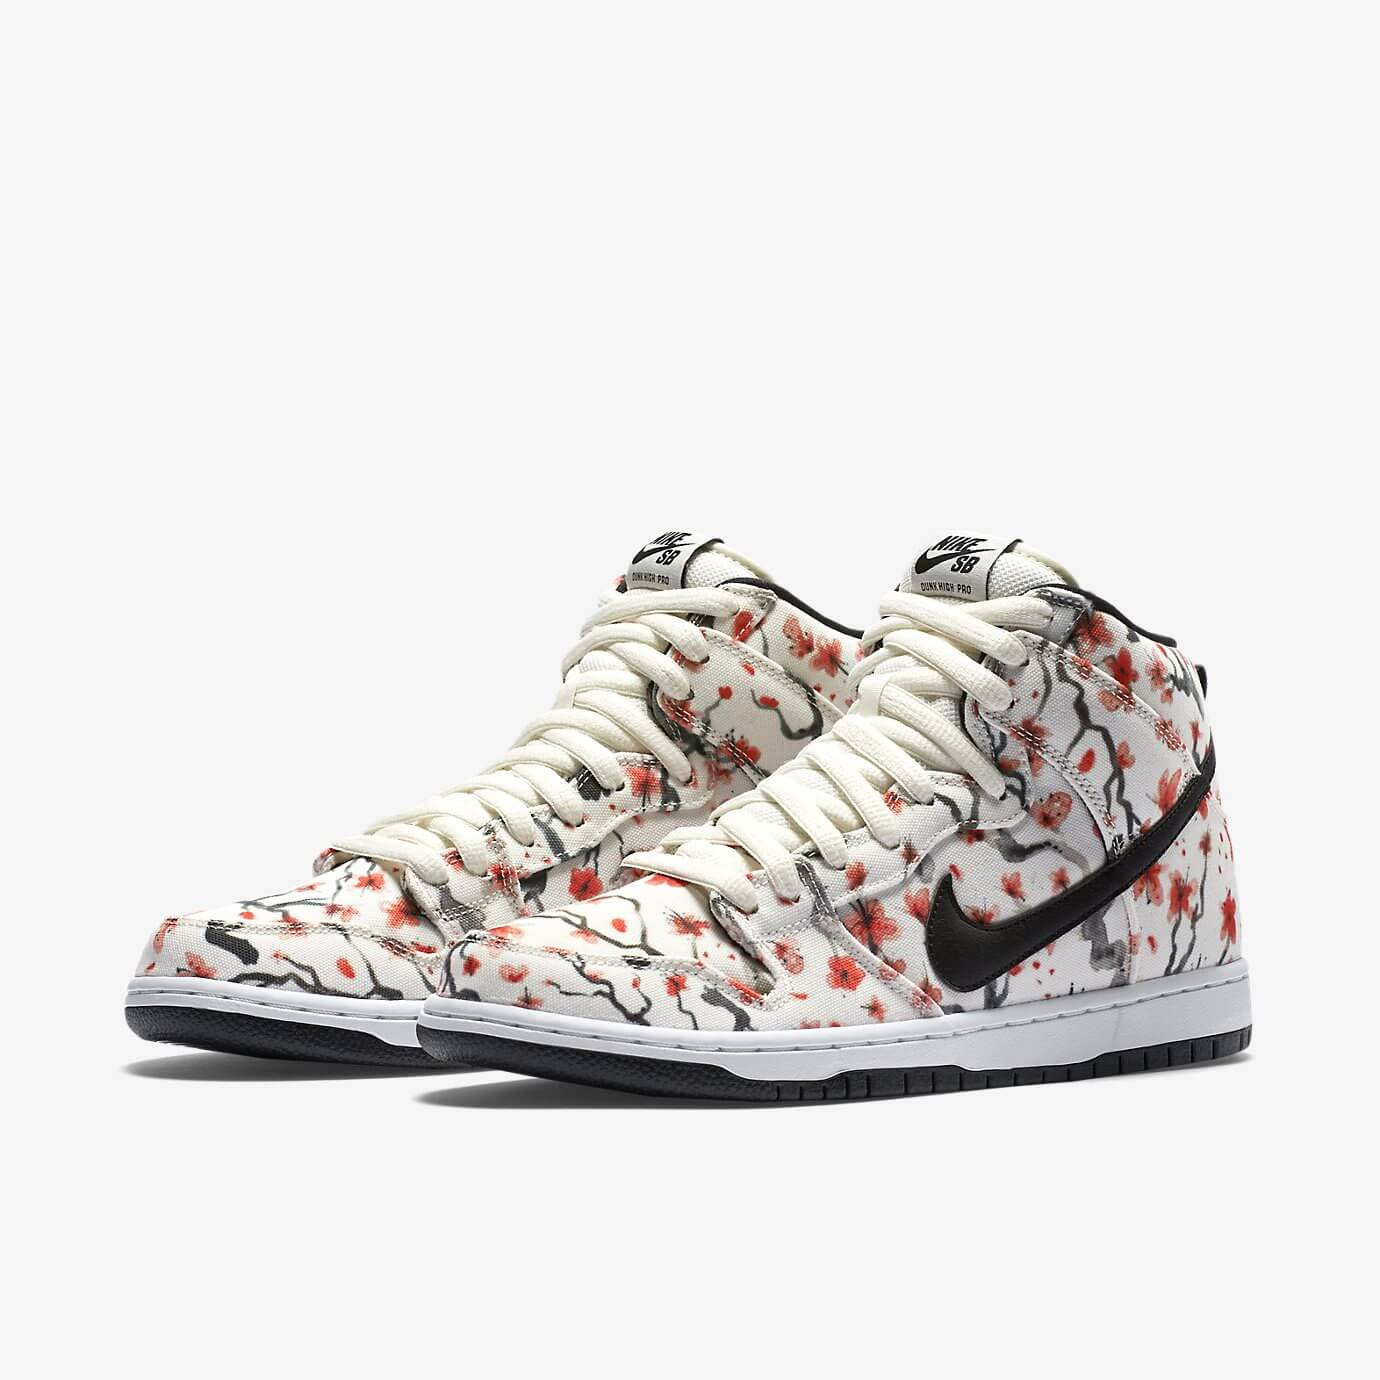 nike dunk sb cherry blossom, The Nike Dunk High Pro SB Cherry Blossom is available now via the following retailers. UK true DD/MM/YYYY Outlook CalendarGoogle CalendarYahoo ...